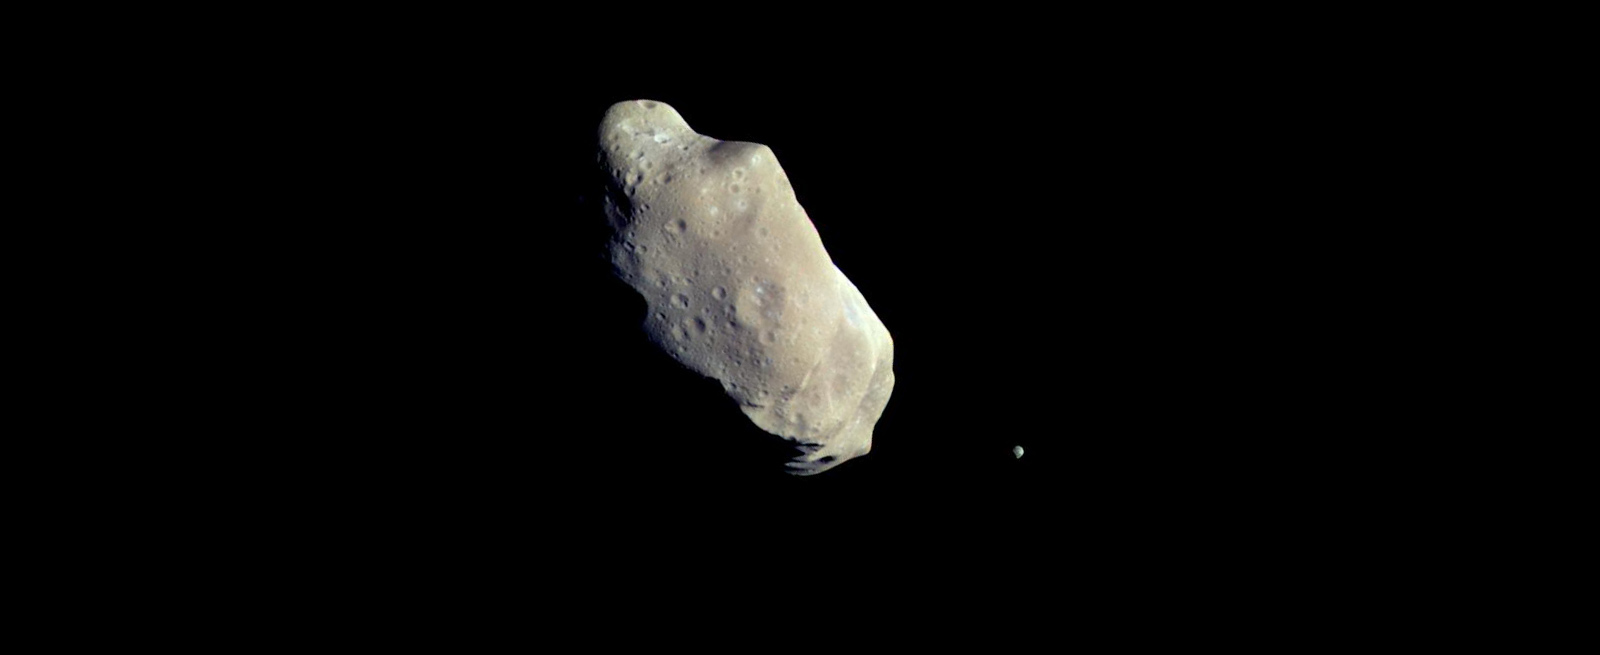 two rocky asteroids in black space